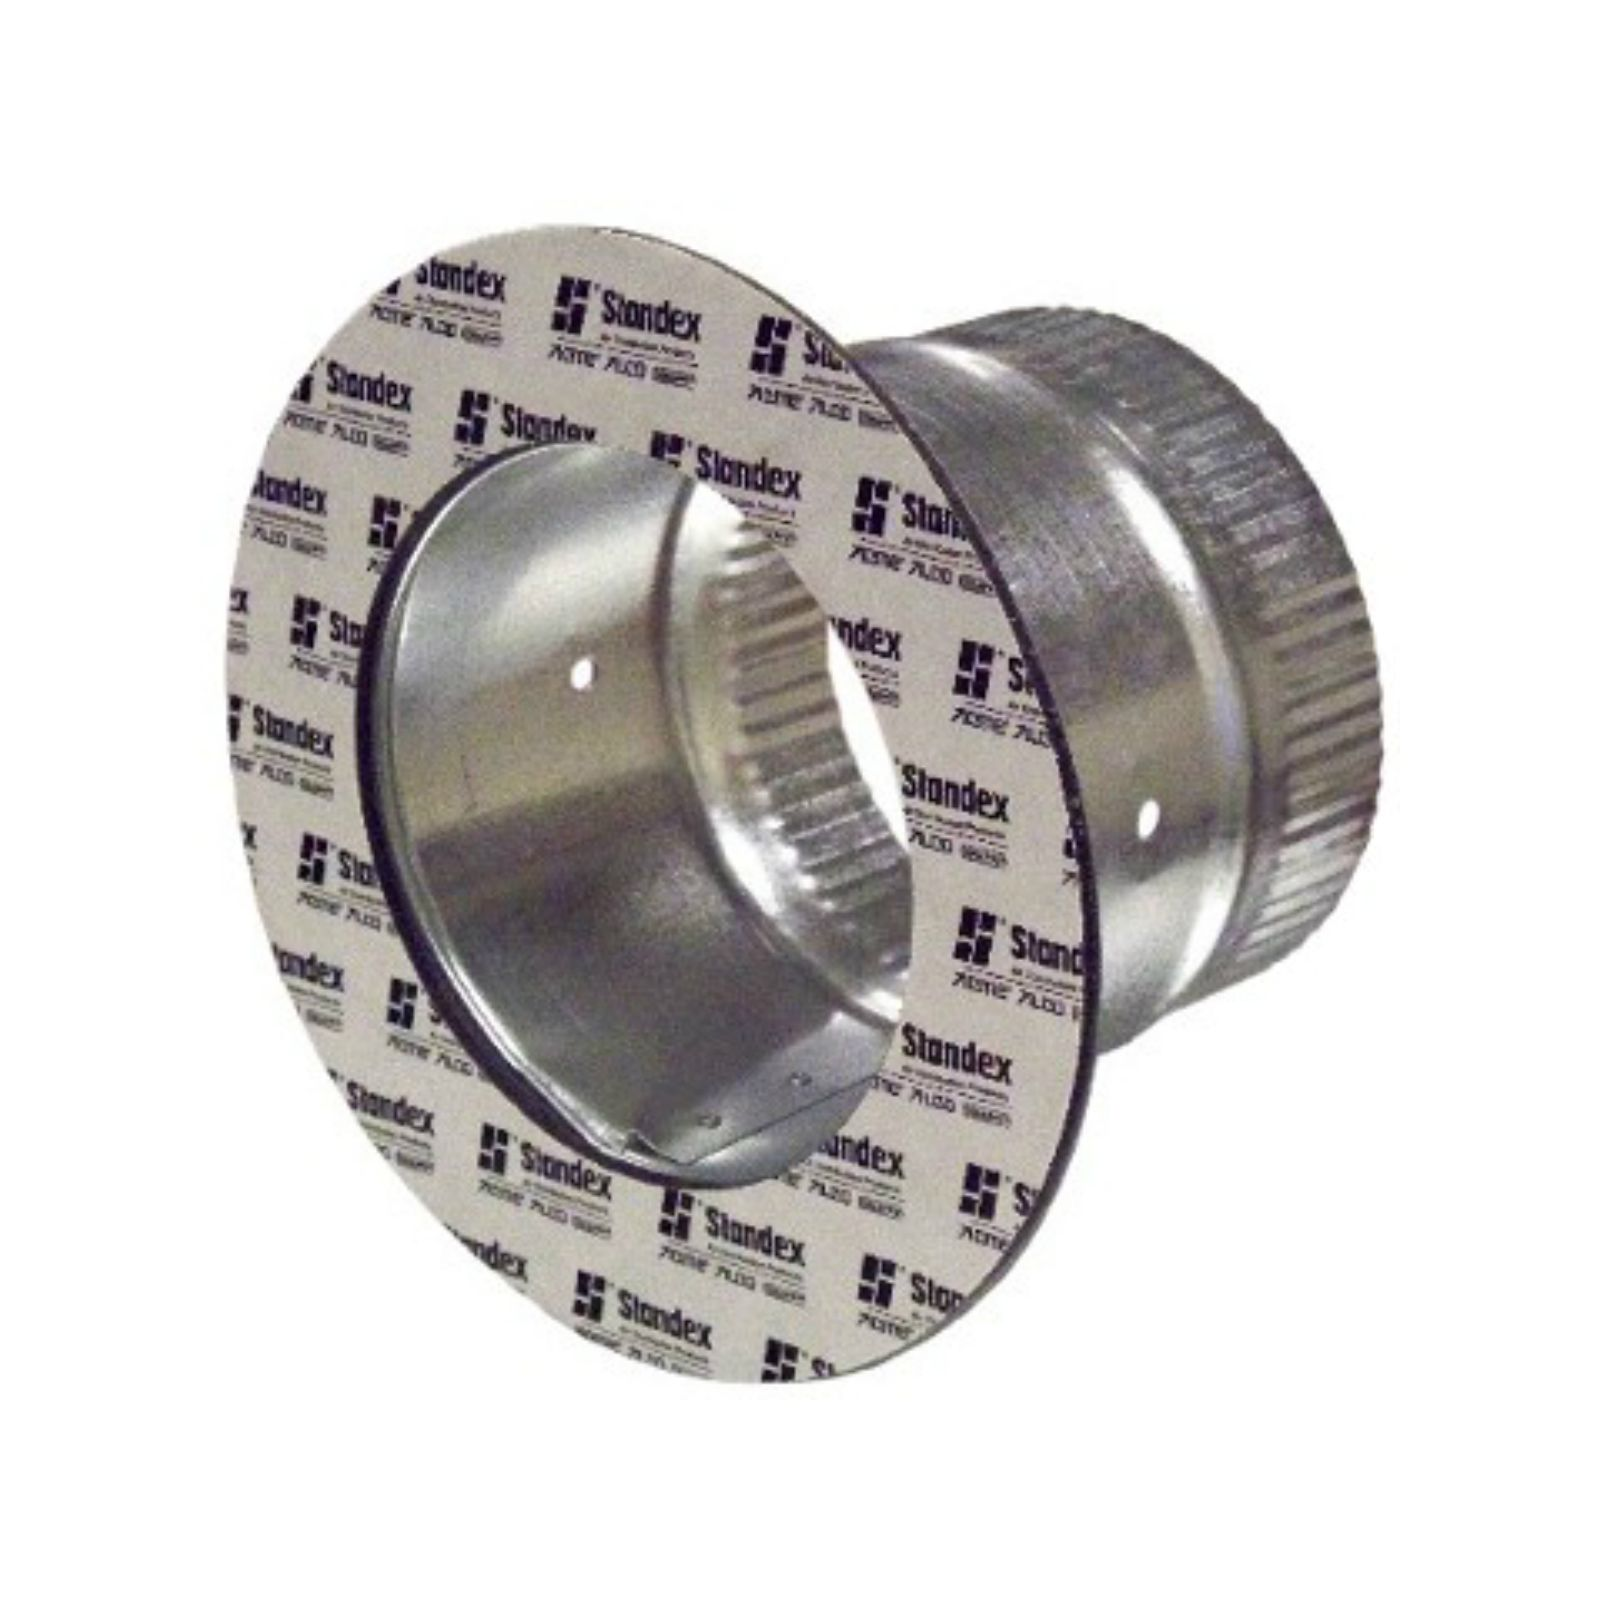 "Snappy 167-8 - #167 - Adhesive Takeoff, 6"" Tube Length, 1 1/2"" Flange, for 8"" Duct"